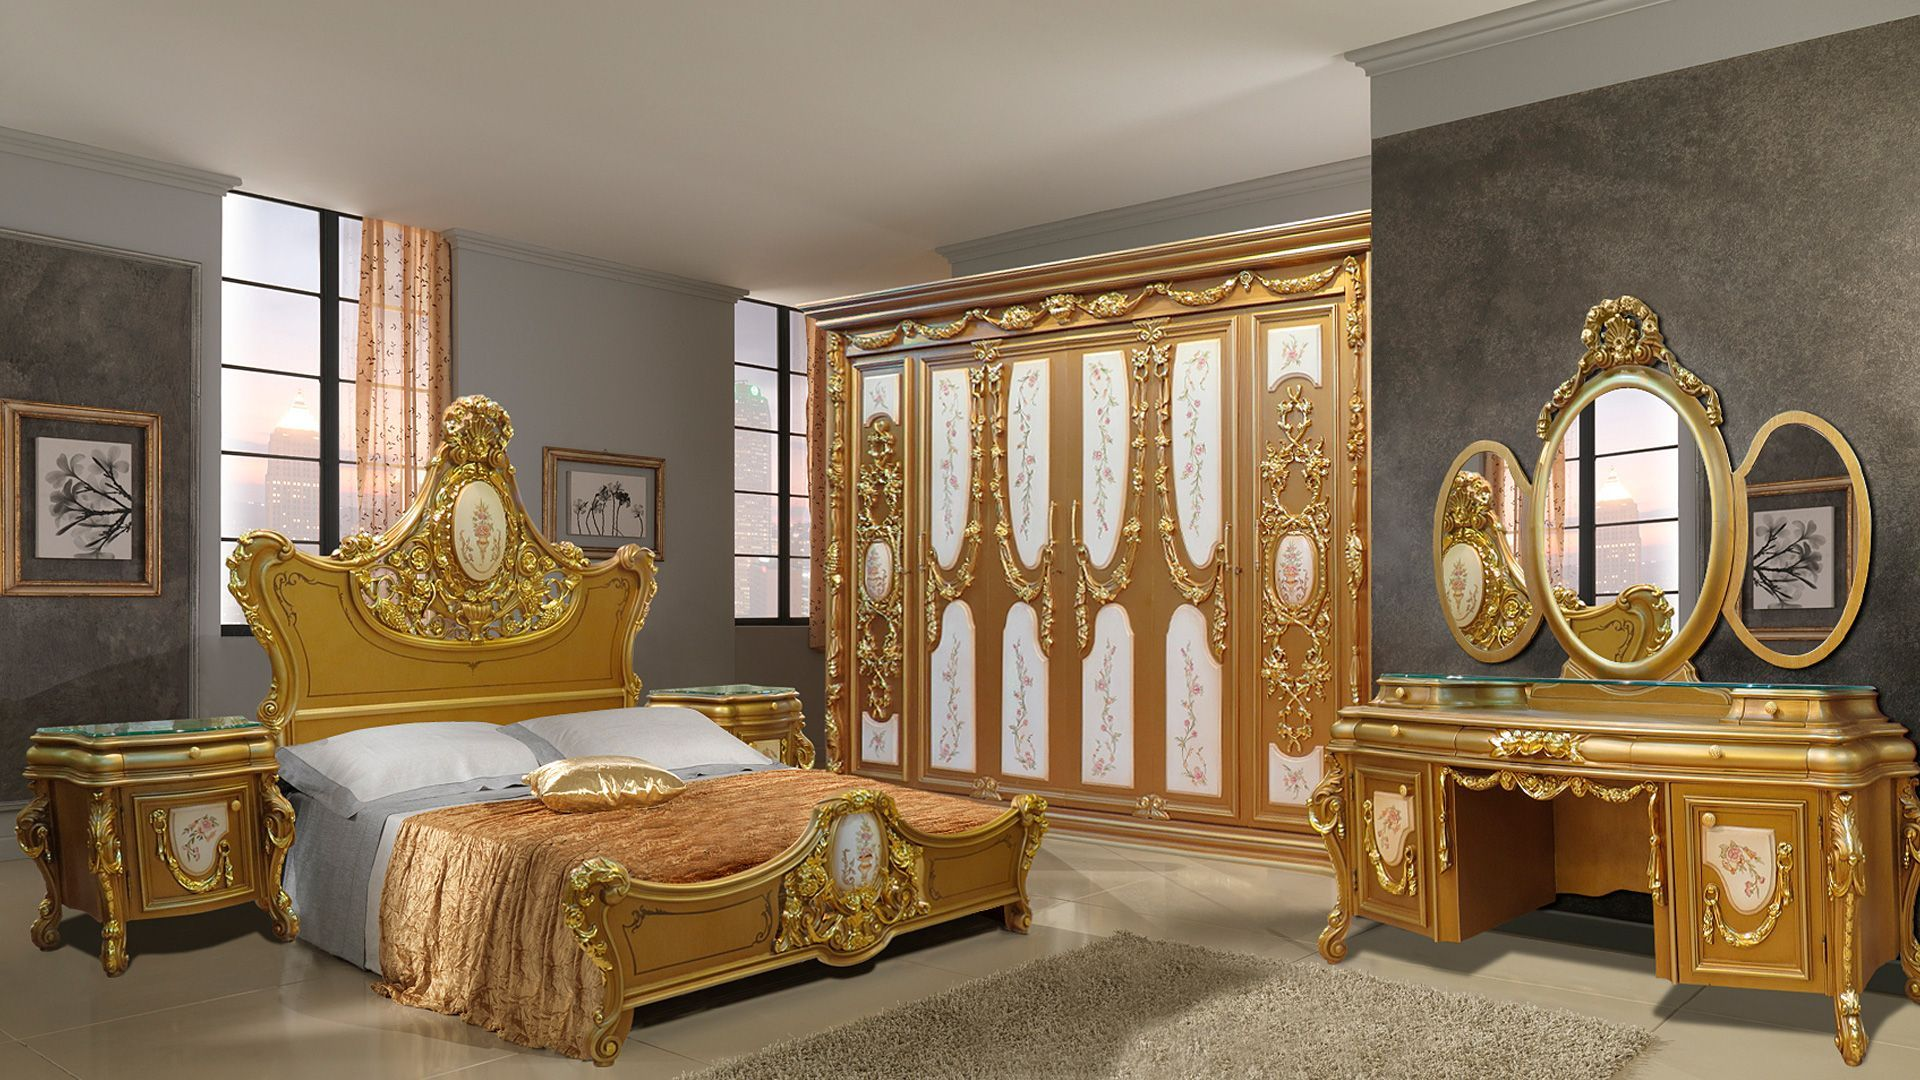 غرفة نوم كلاسيك Golden Oval Classic Bedroom Classic Furniture